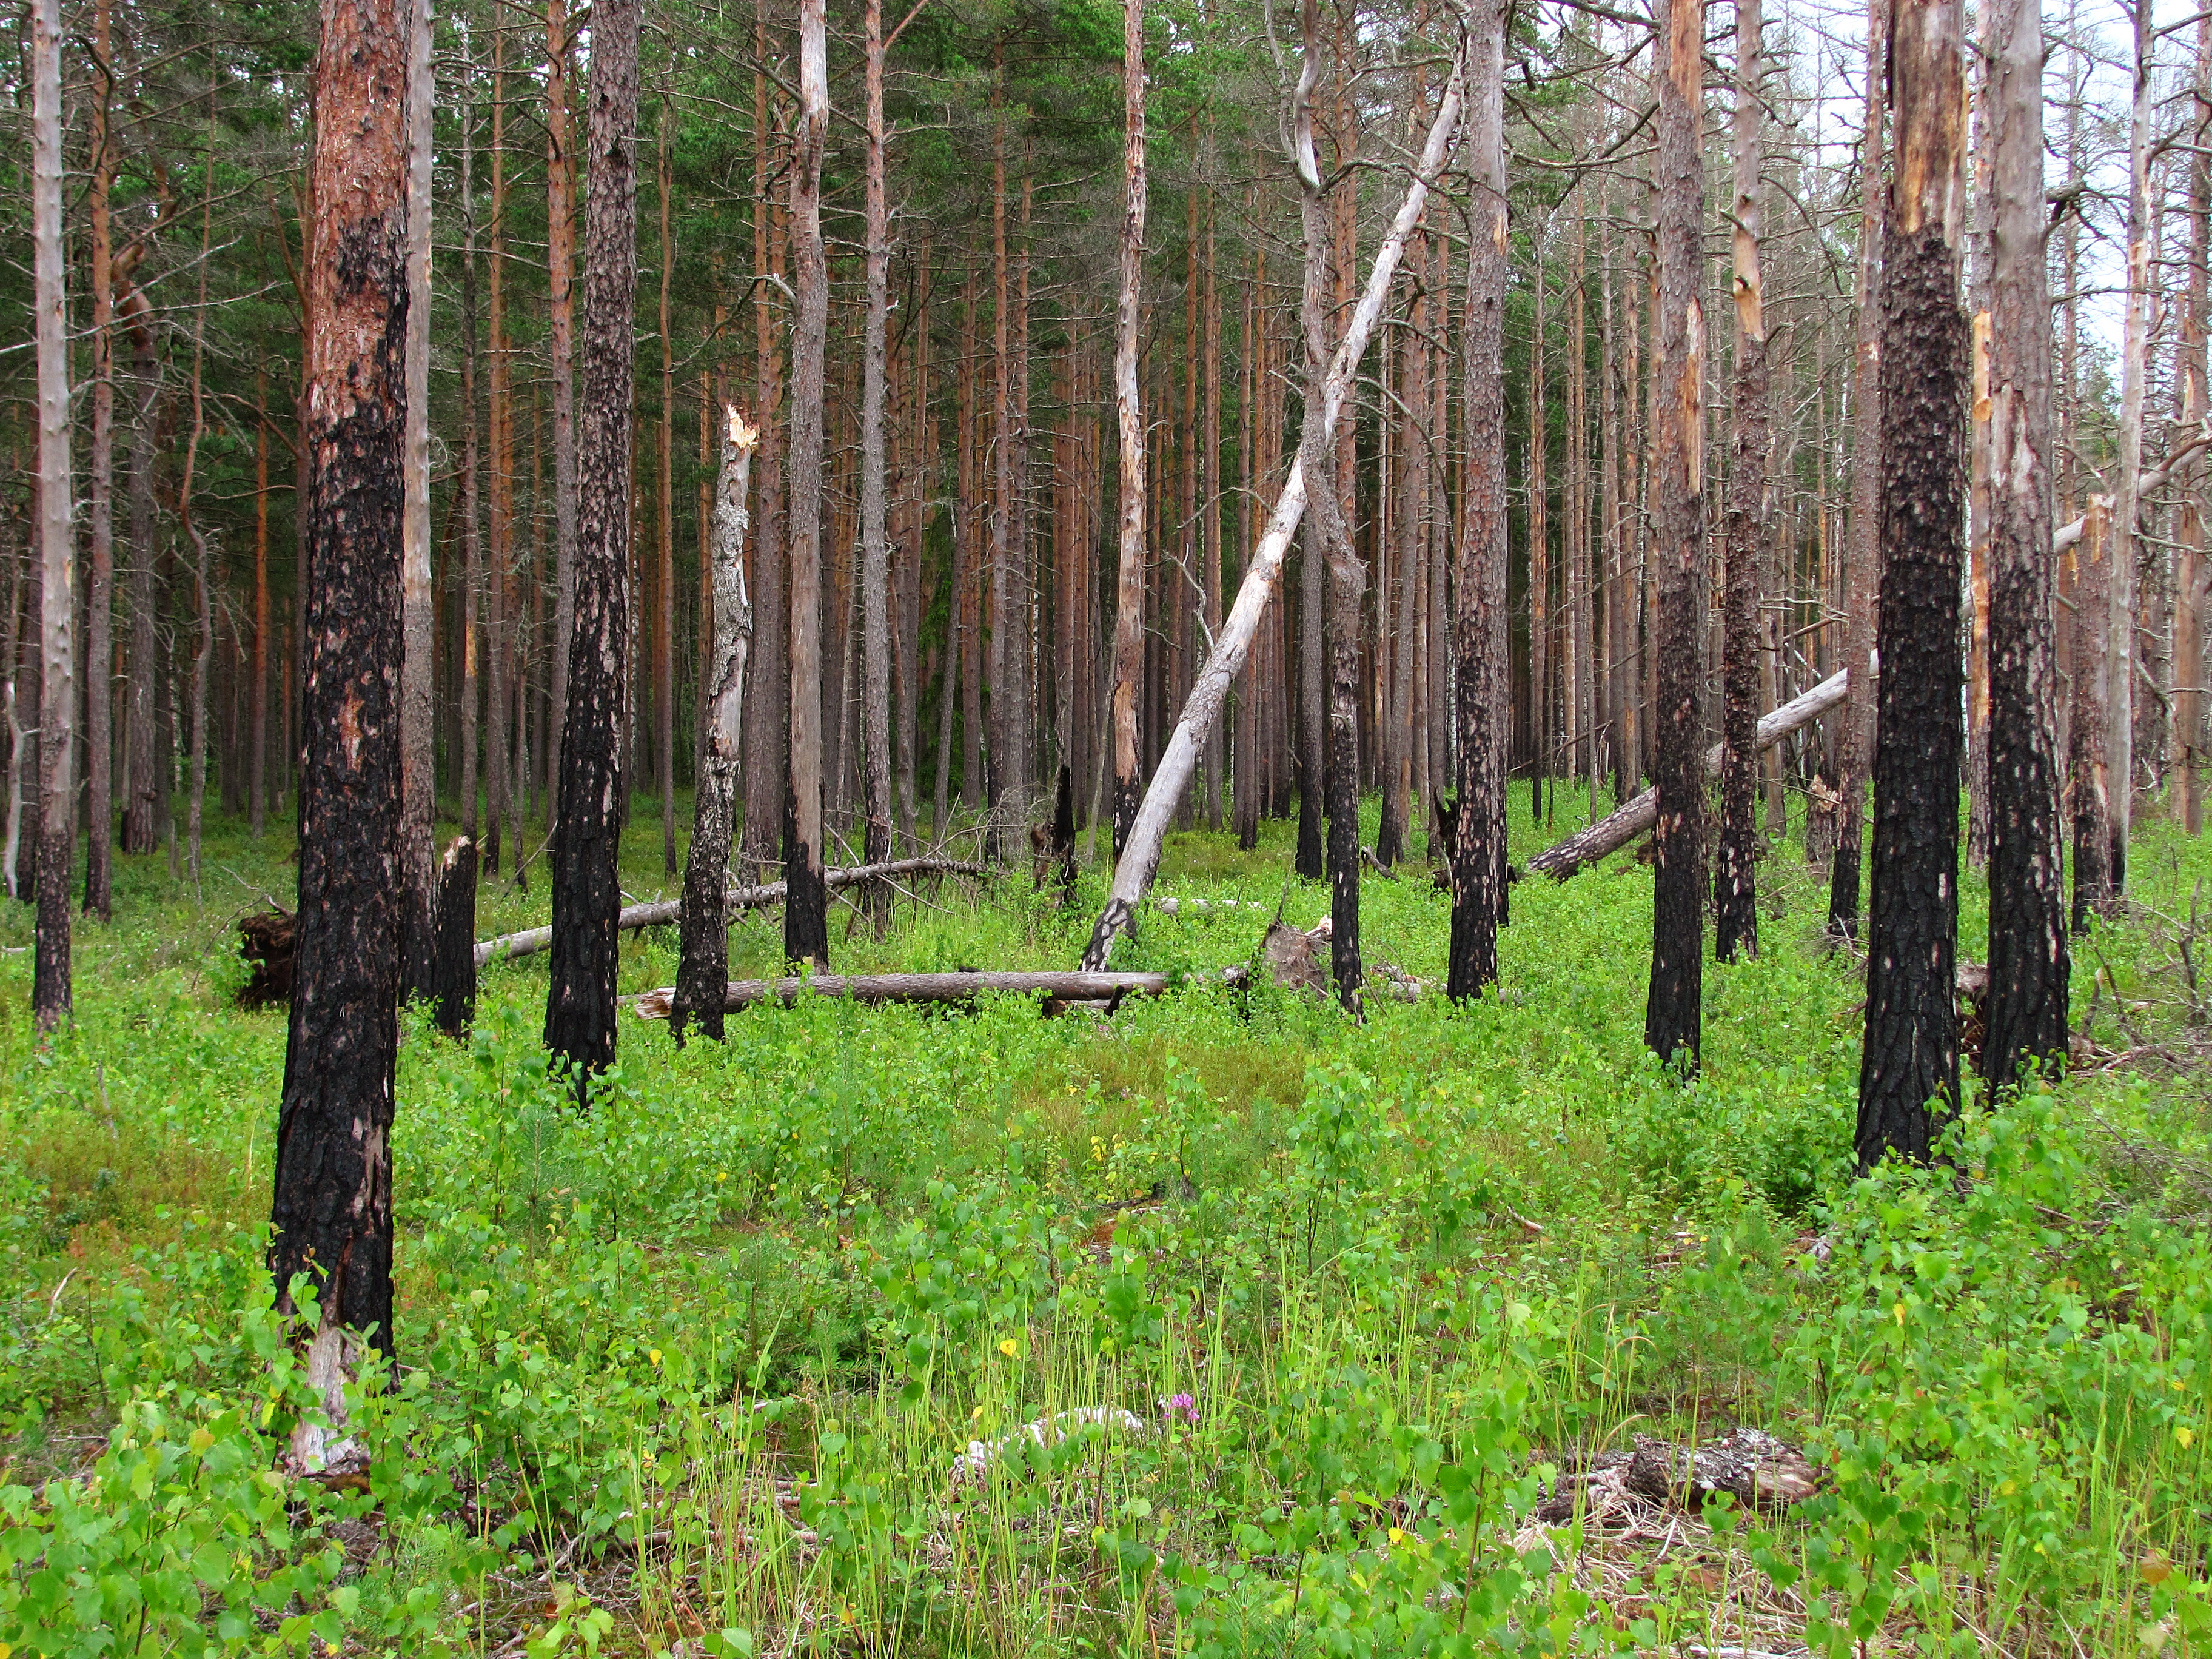 File:Boreal pine forest 5 years after fire, 2011-07.jpg ...